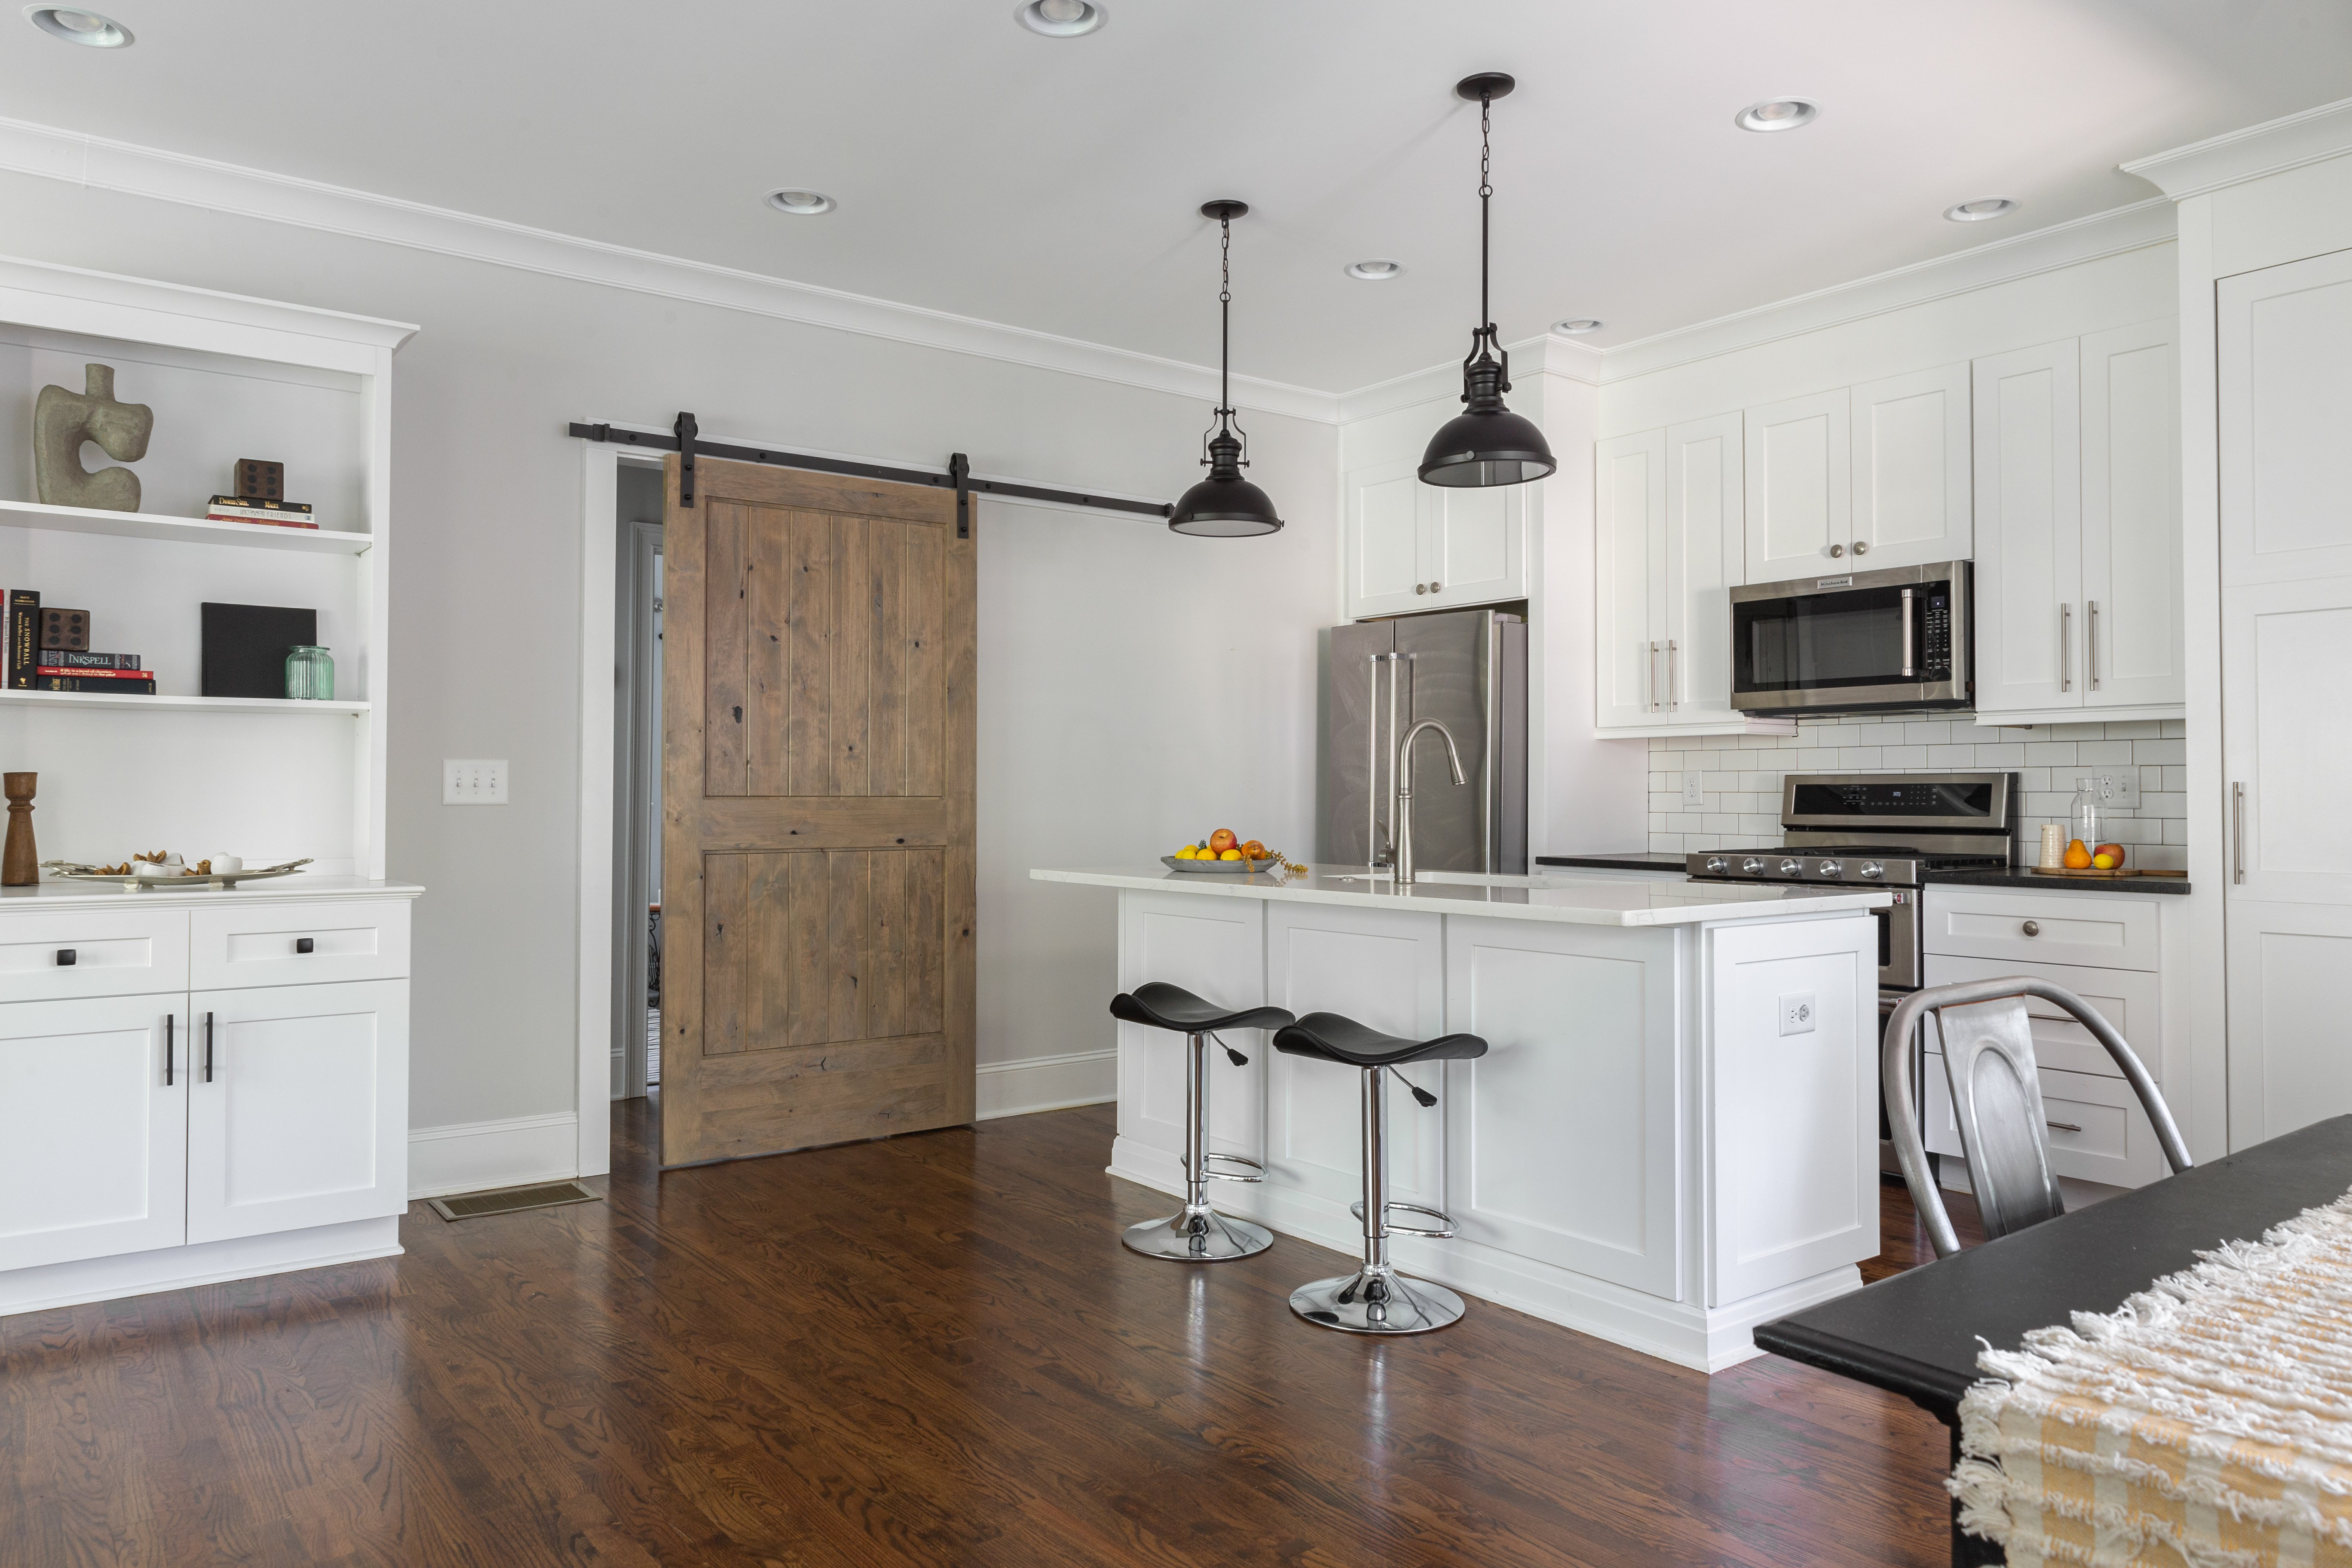 10 counter stools Sinclair Carriage House-4.jpg